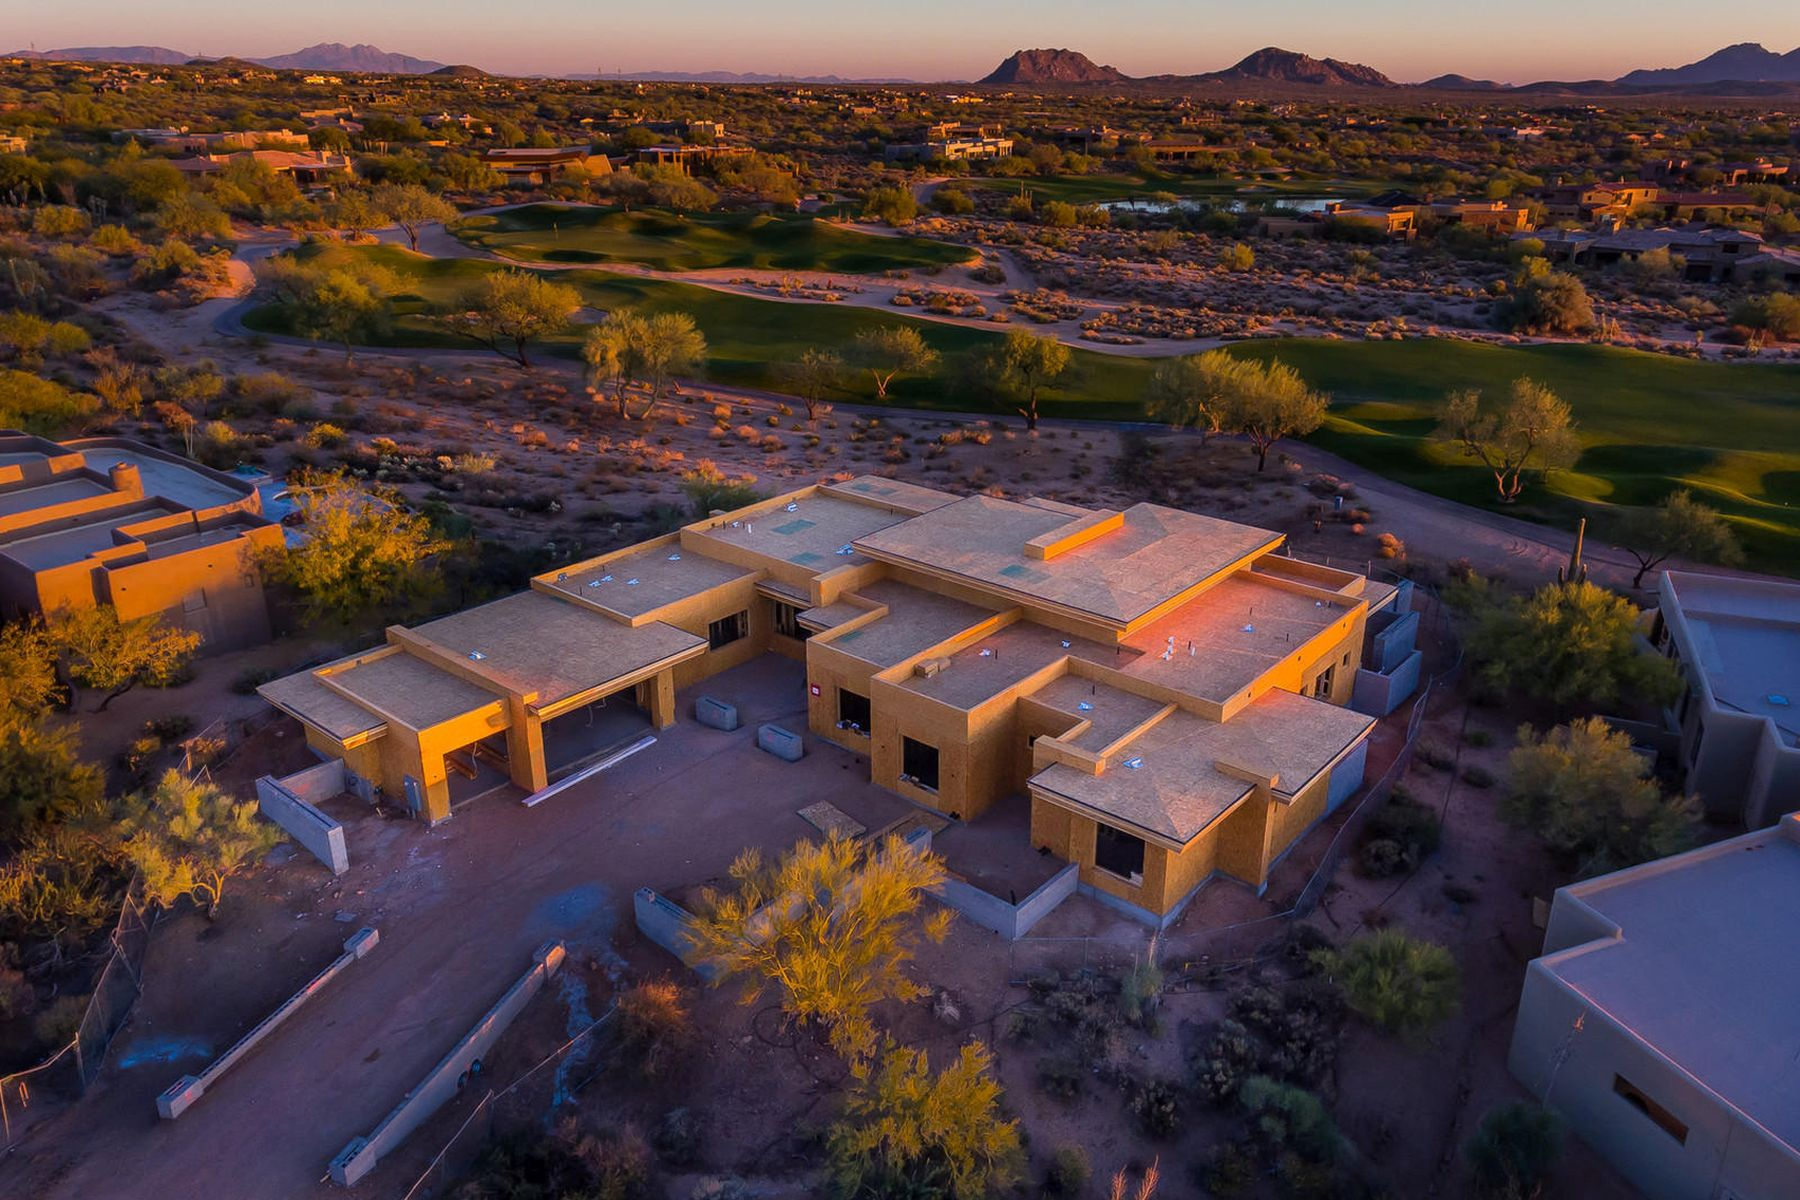 Single Family Home for Sale at South facing Soft Contemporary Home in Desert Mountain 10101 E Horizon Dr, Scottsdale, Arizona, 85262 United States